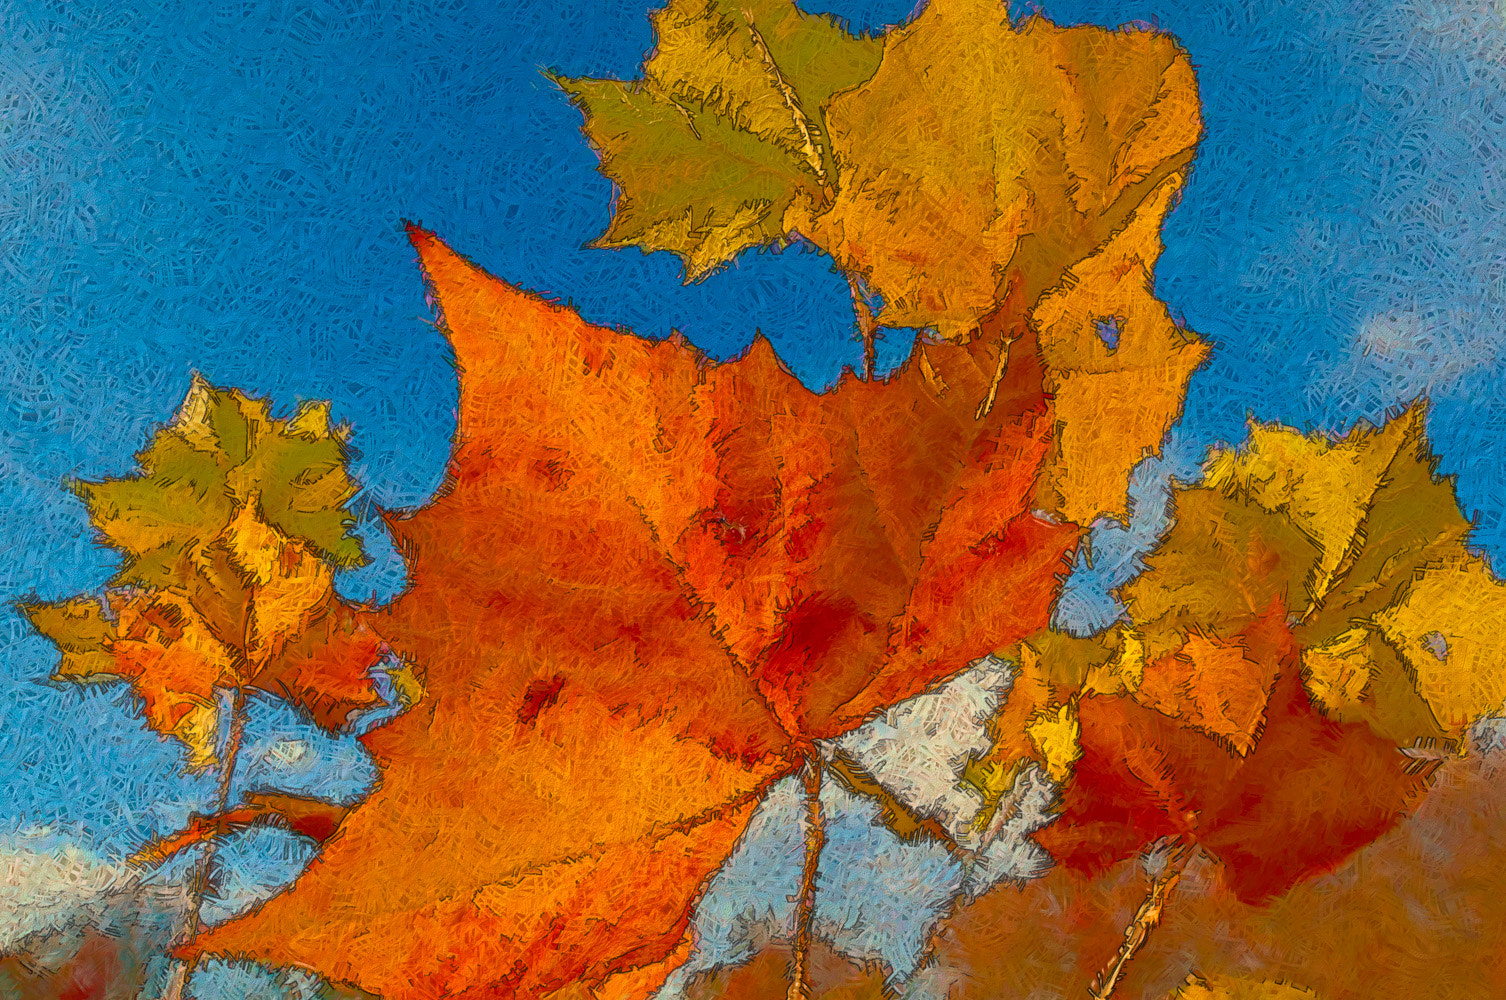 Photograph Colors of Autumn by Debra Keller on 500px